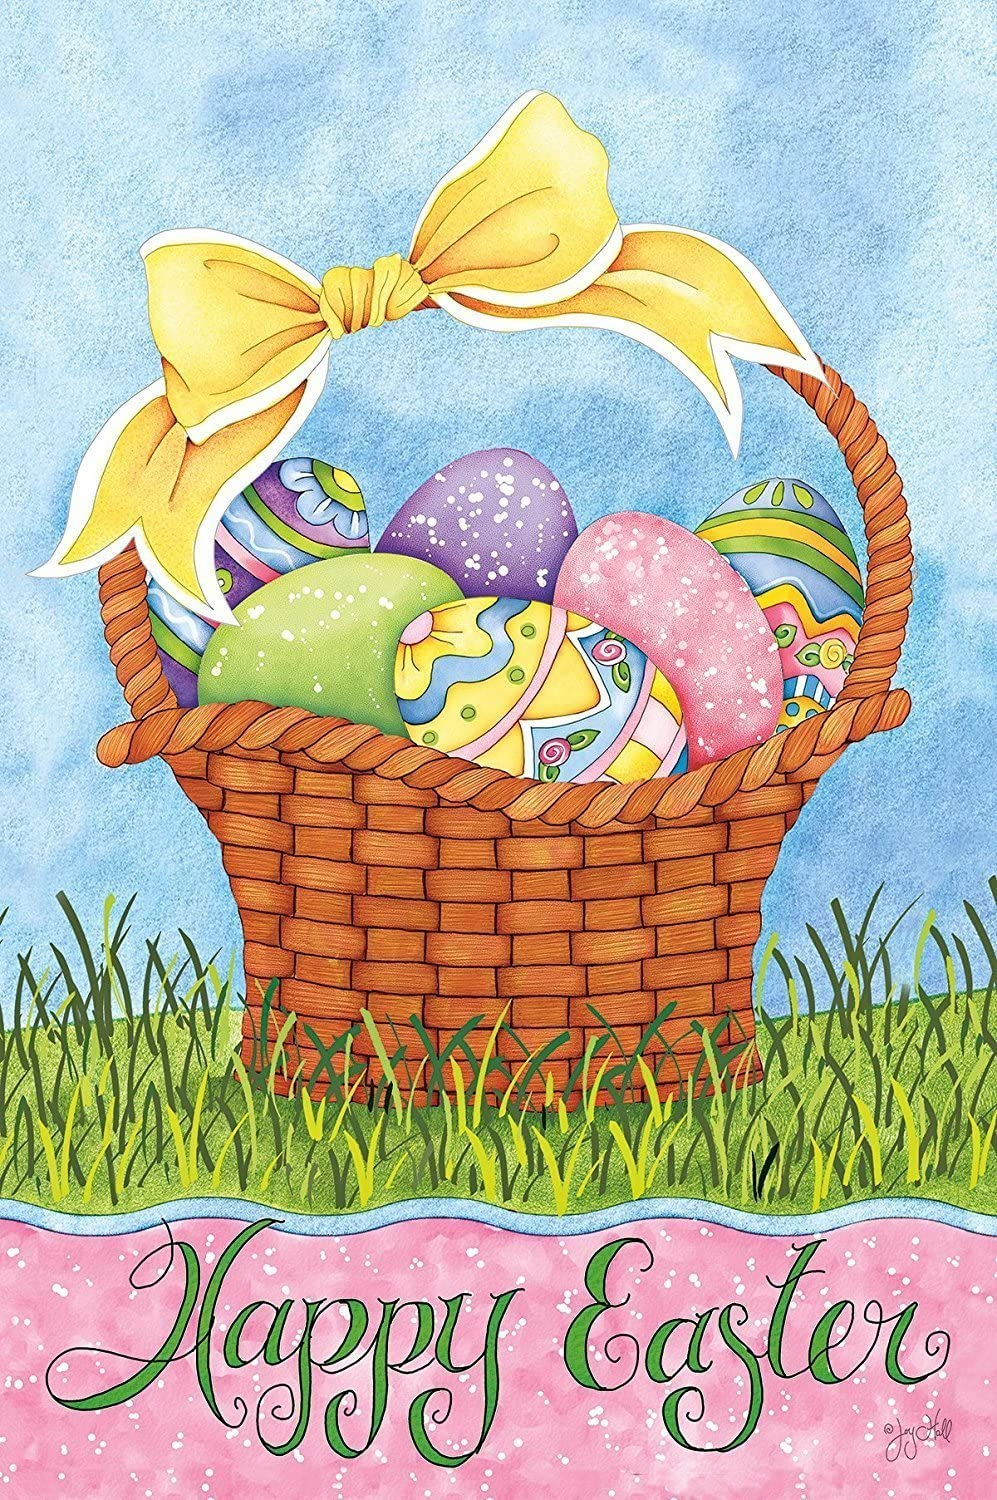 Raininc's Mini Garden Flag -Easter Basket, Exclusive Artwork by Joy Hall - All-Weather, Fade-Resistant Polyester - 12 w x 18 h